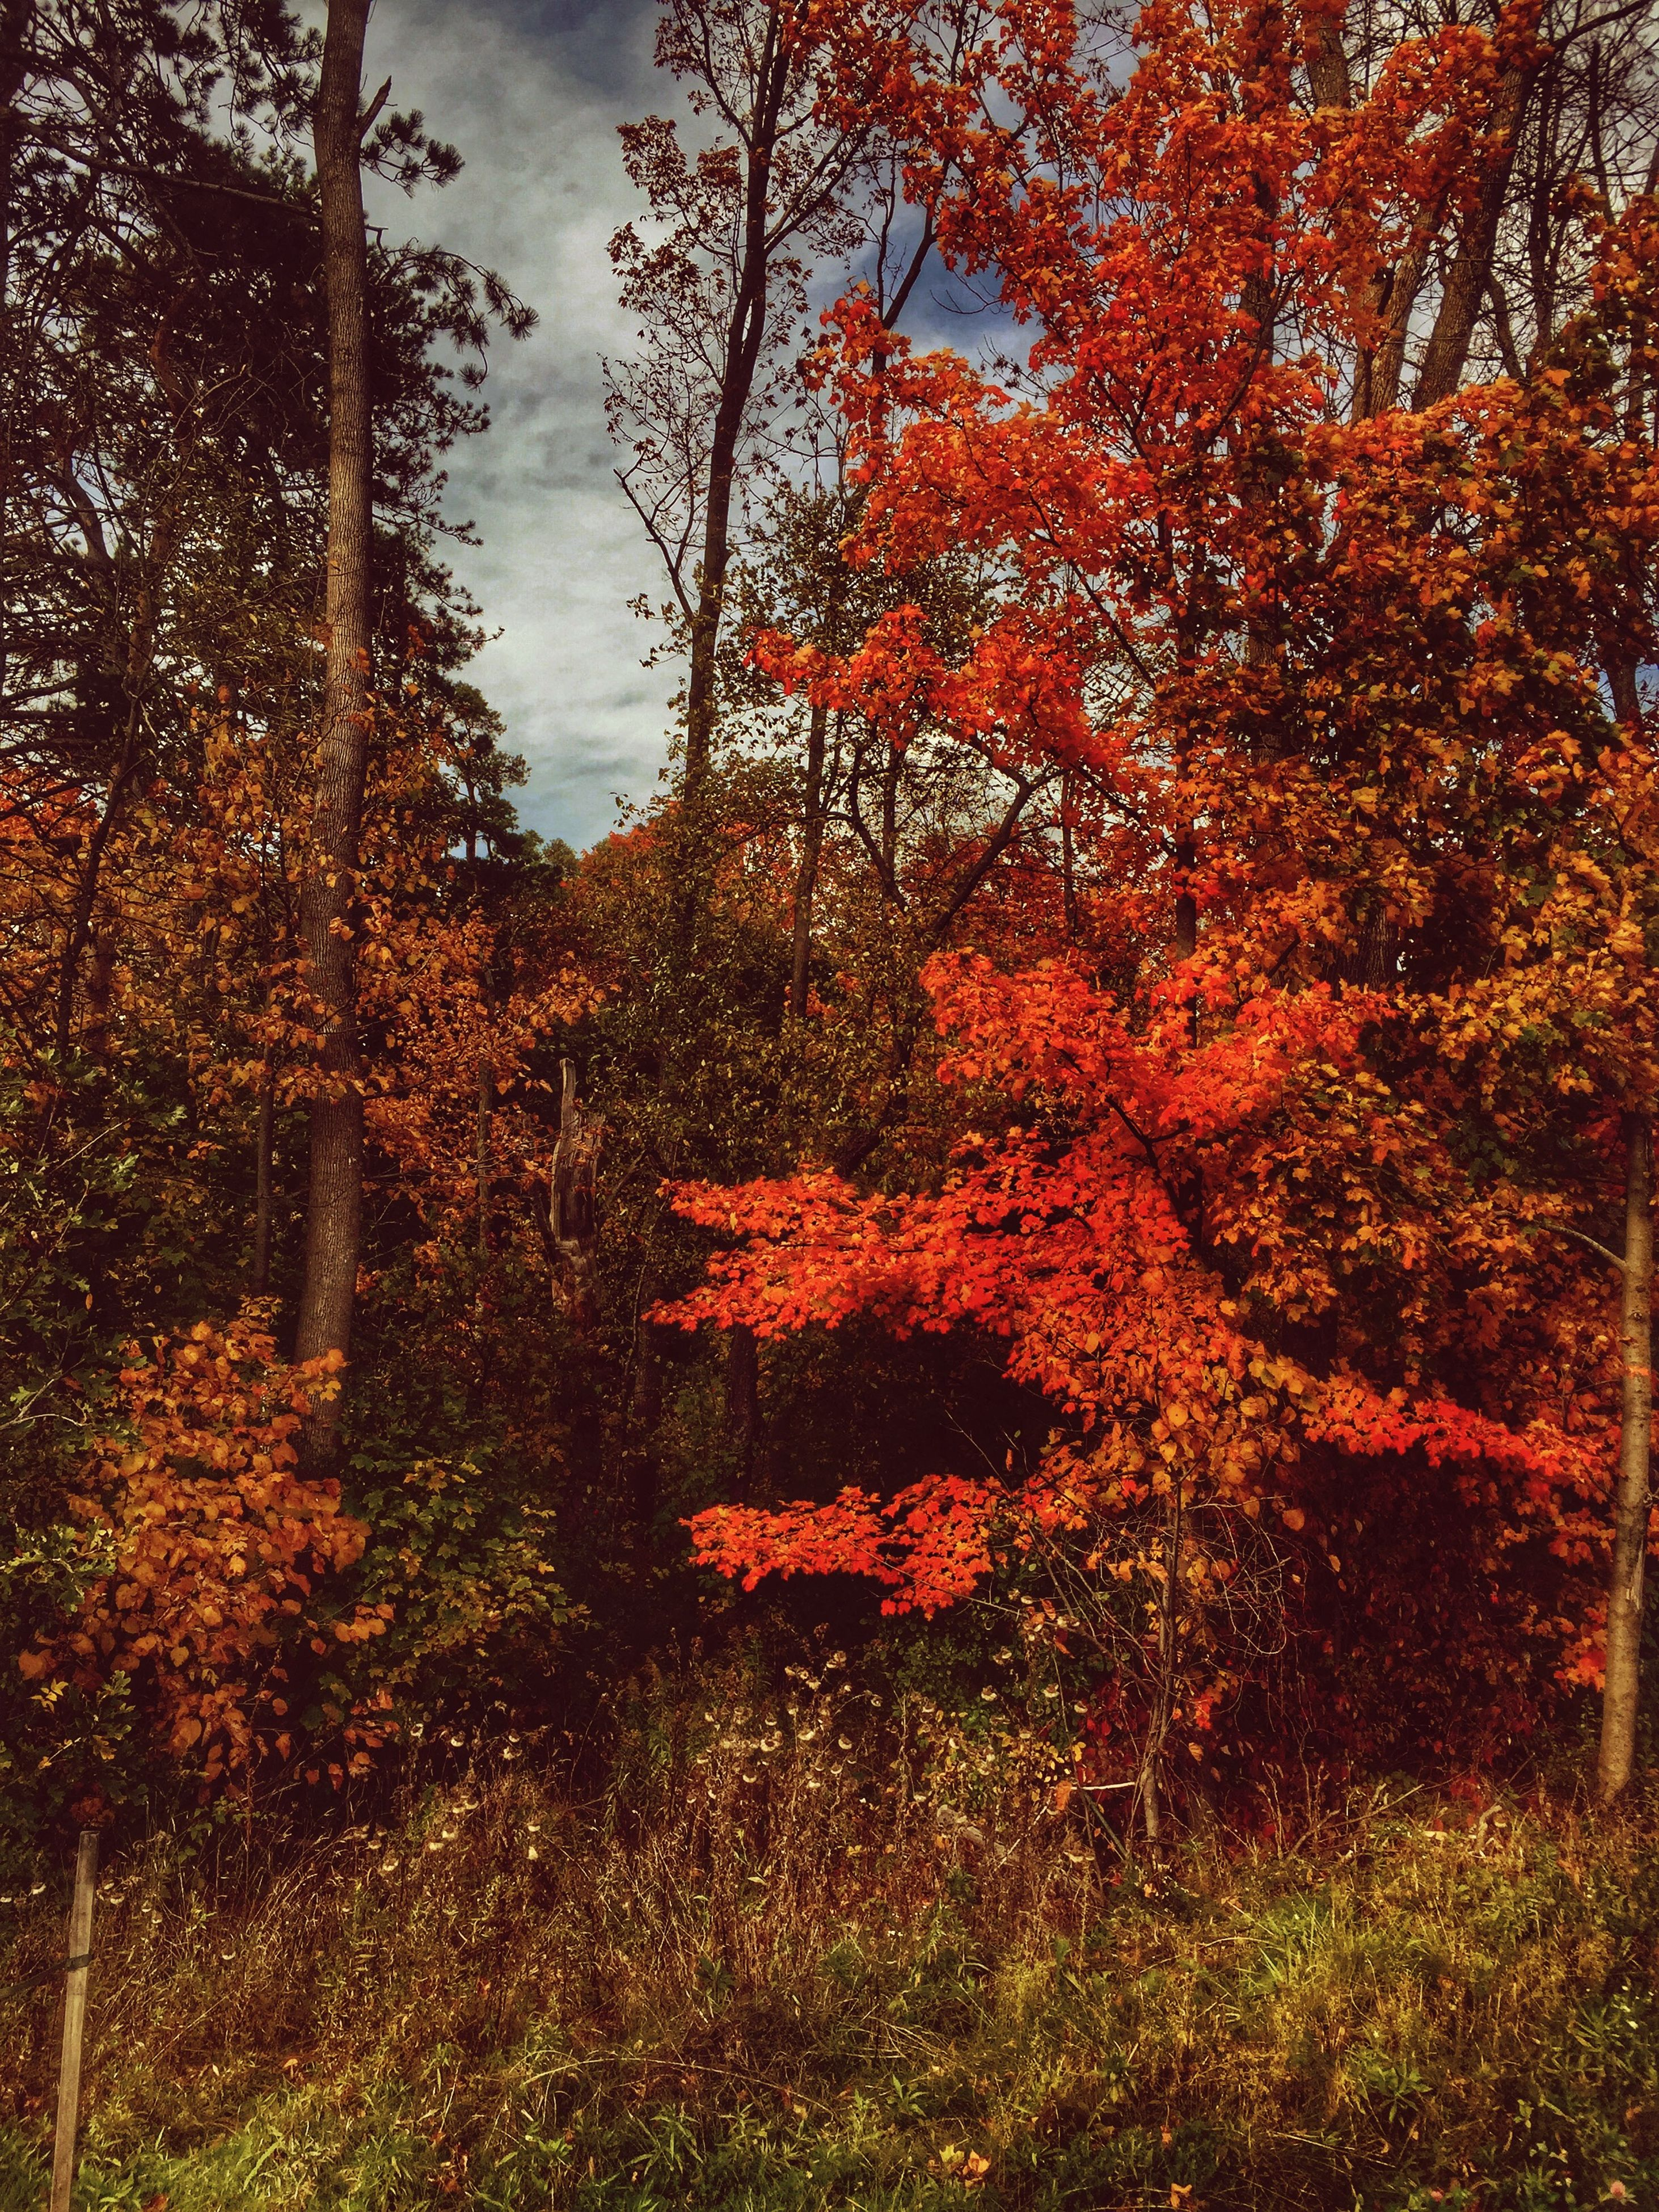 tree, red, growth, tranquility, nature, tranquil scene, sky, autumn, grass, orange color, field, beauty in nature, text, scenics, plant, forest, no people, communication, day, outdoors